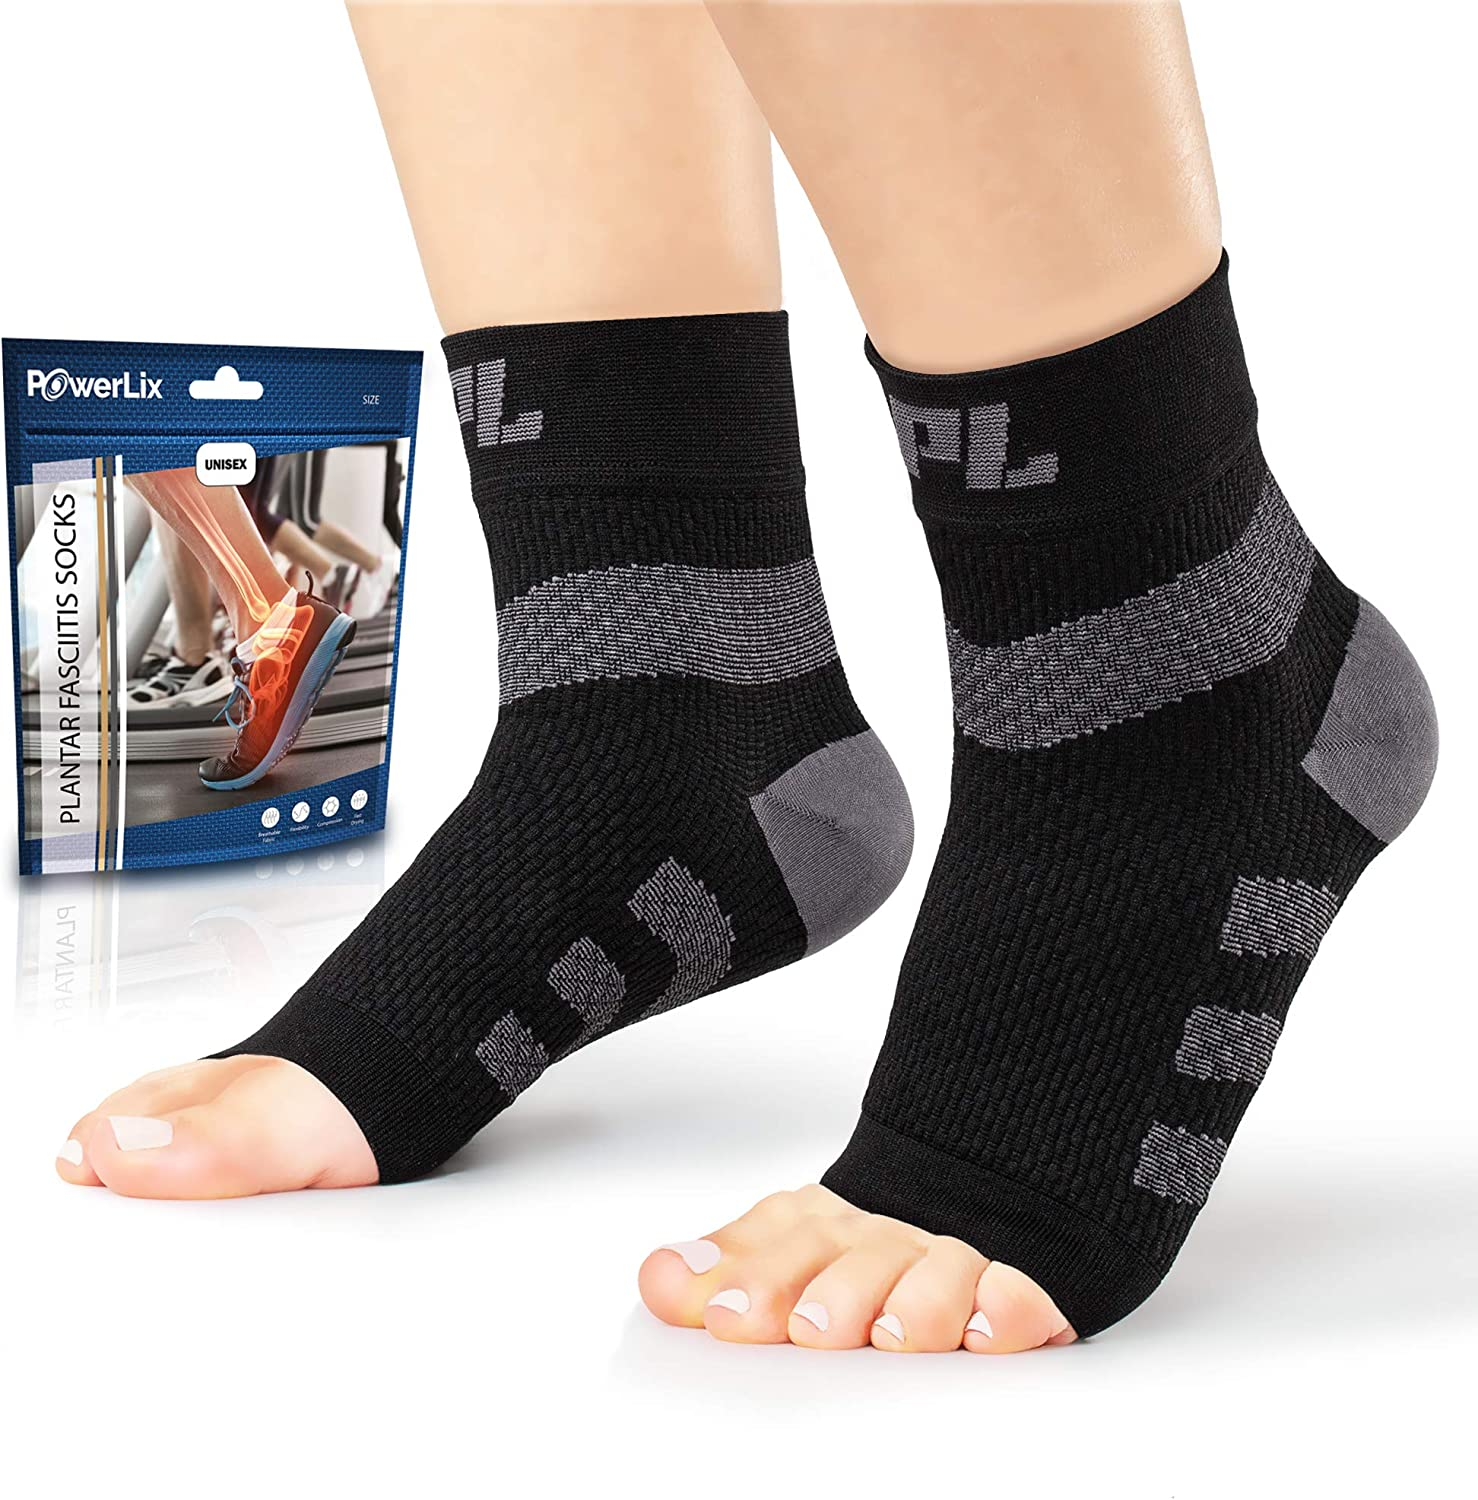 Powerlix Nano Socks (Pair) Ankle Brace for Women & Men, Ankle Support, Plantar Fasciitis Socks & Toeless Compression Foot Sleeve for Neuropathy, Arch and Heel Pain – Better Than Night Splint & Insoles: Health & Personal Care